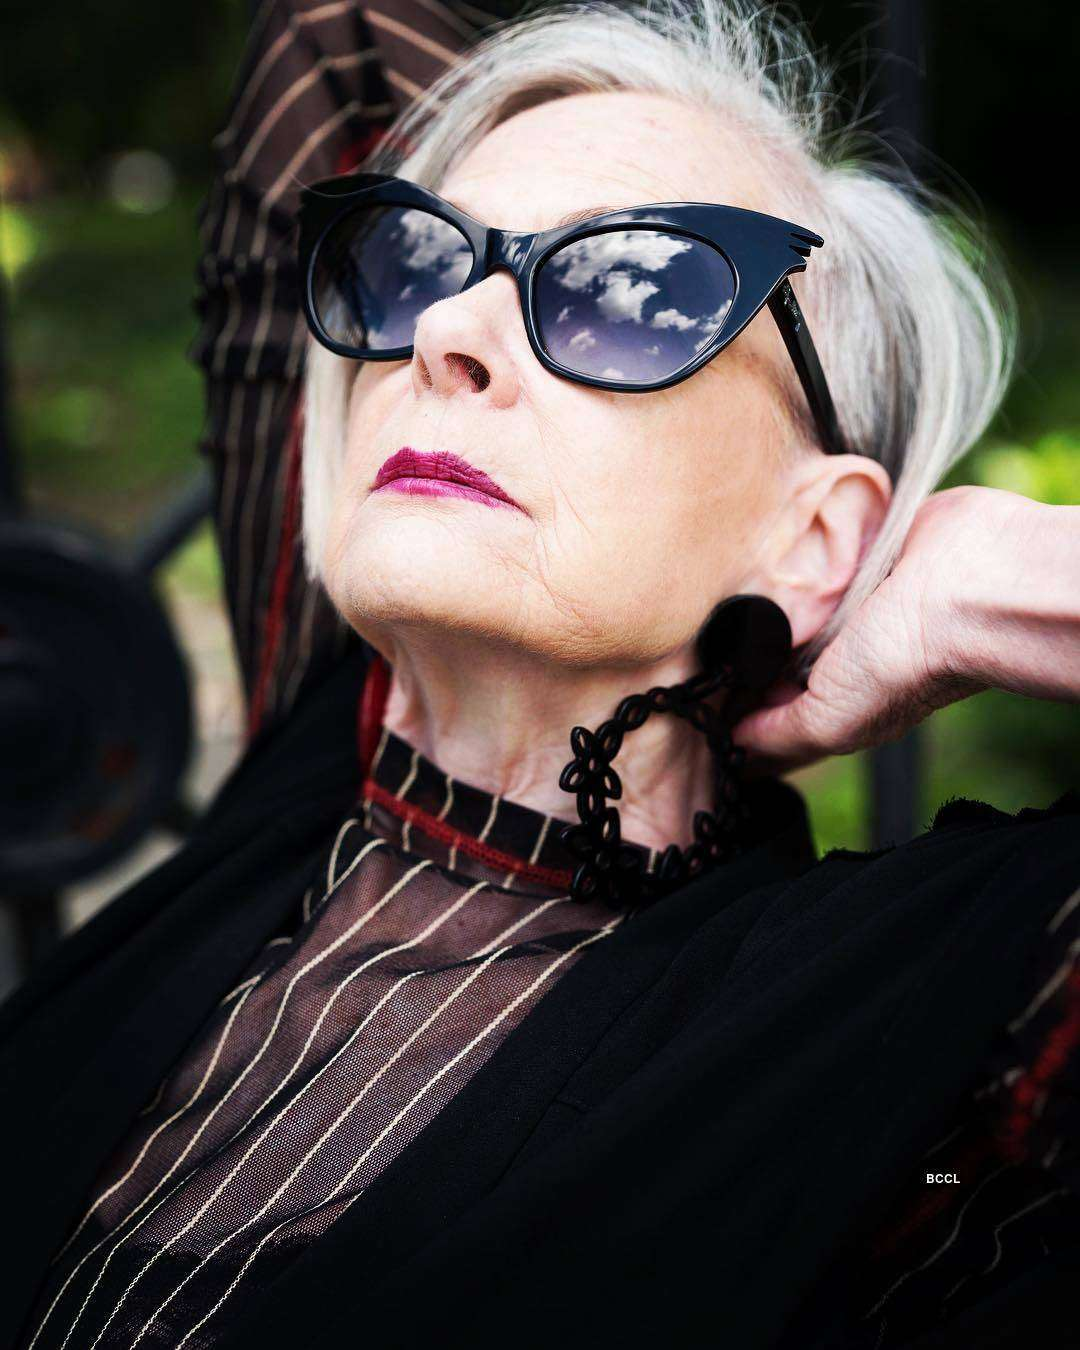 64-year-old grandmother gives young models run for their money